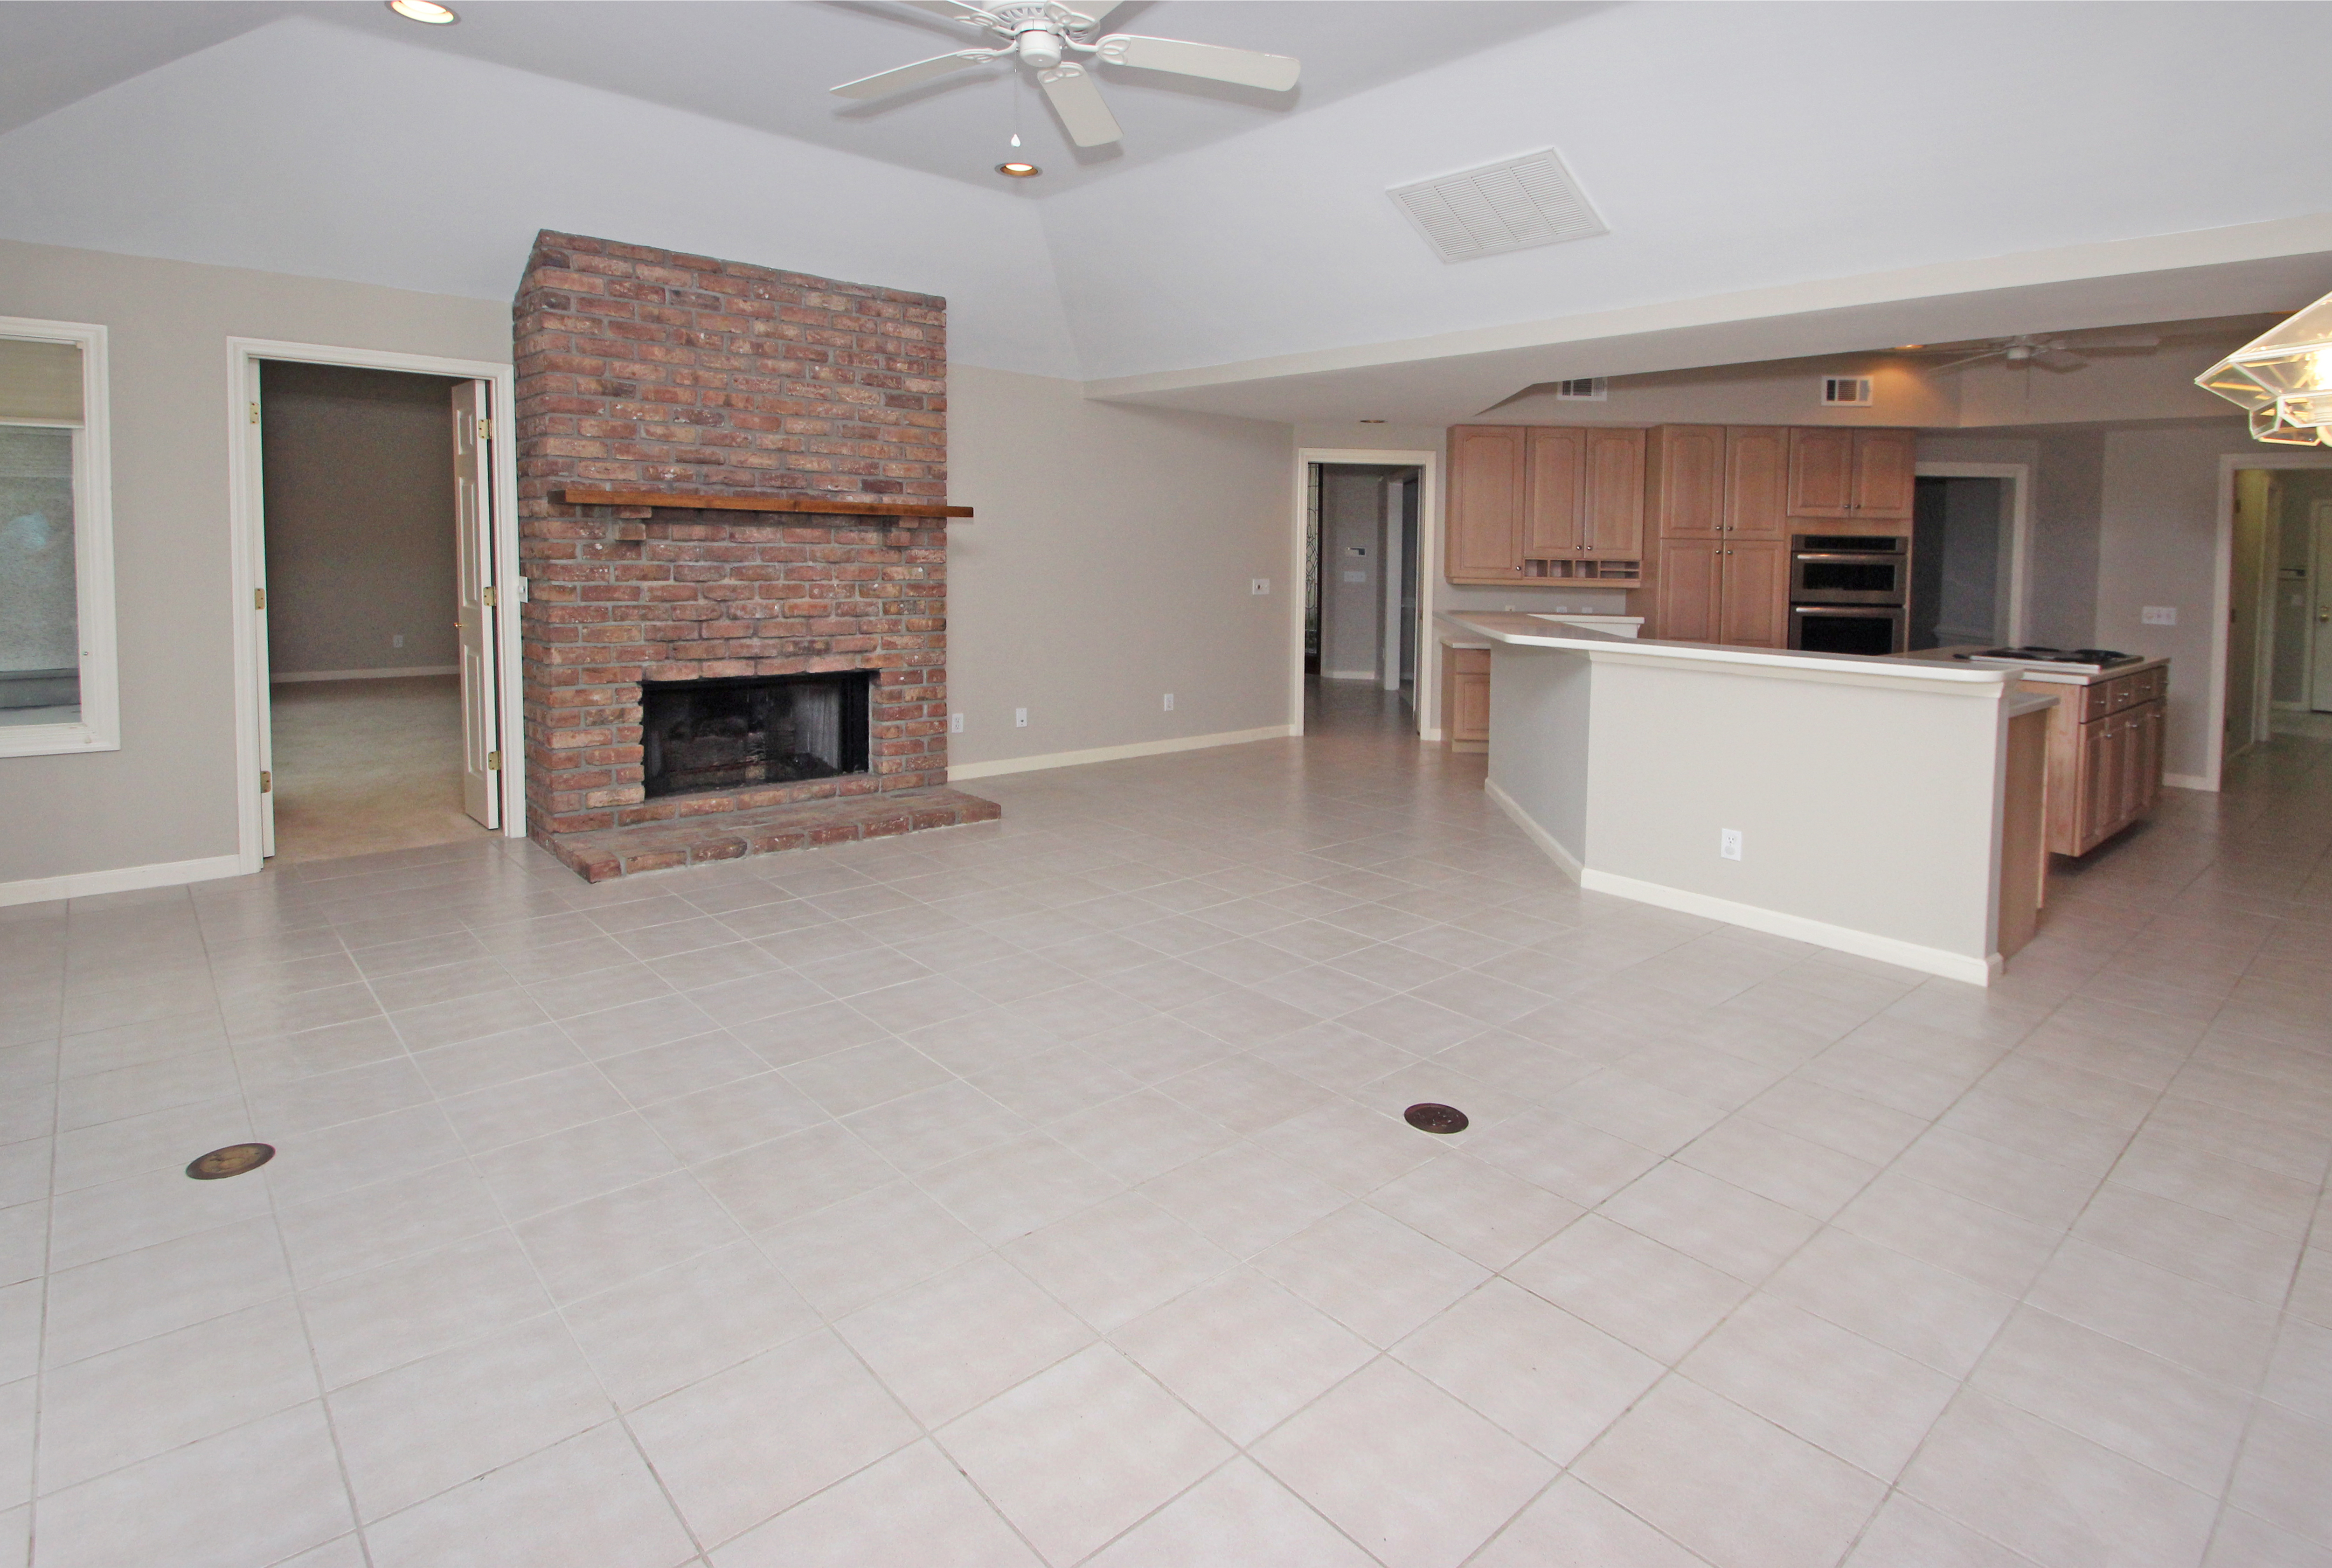 HI - Family room with fireplace